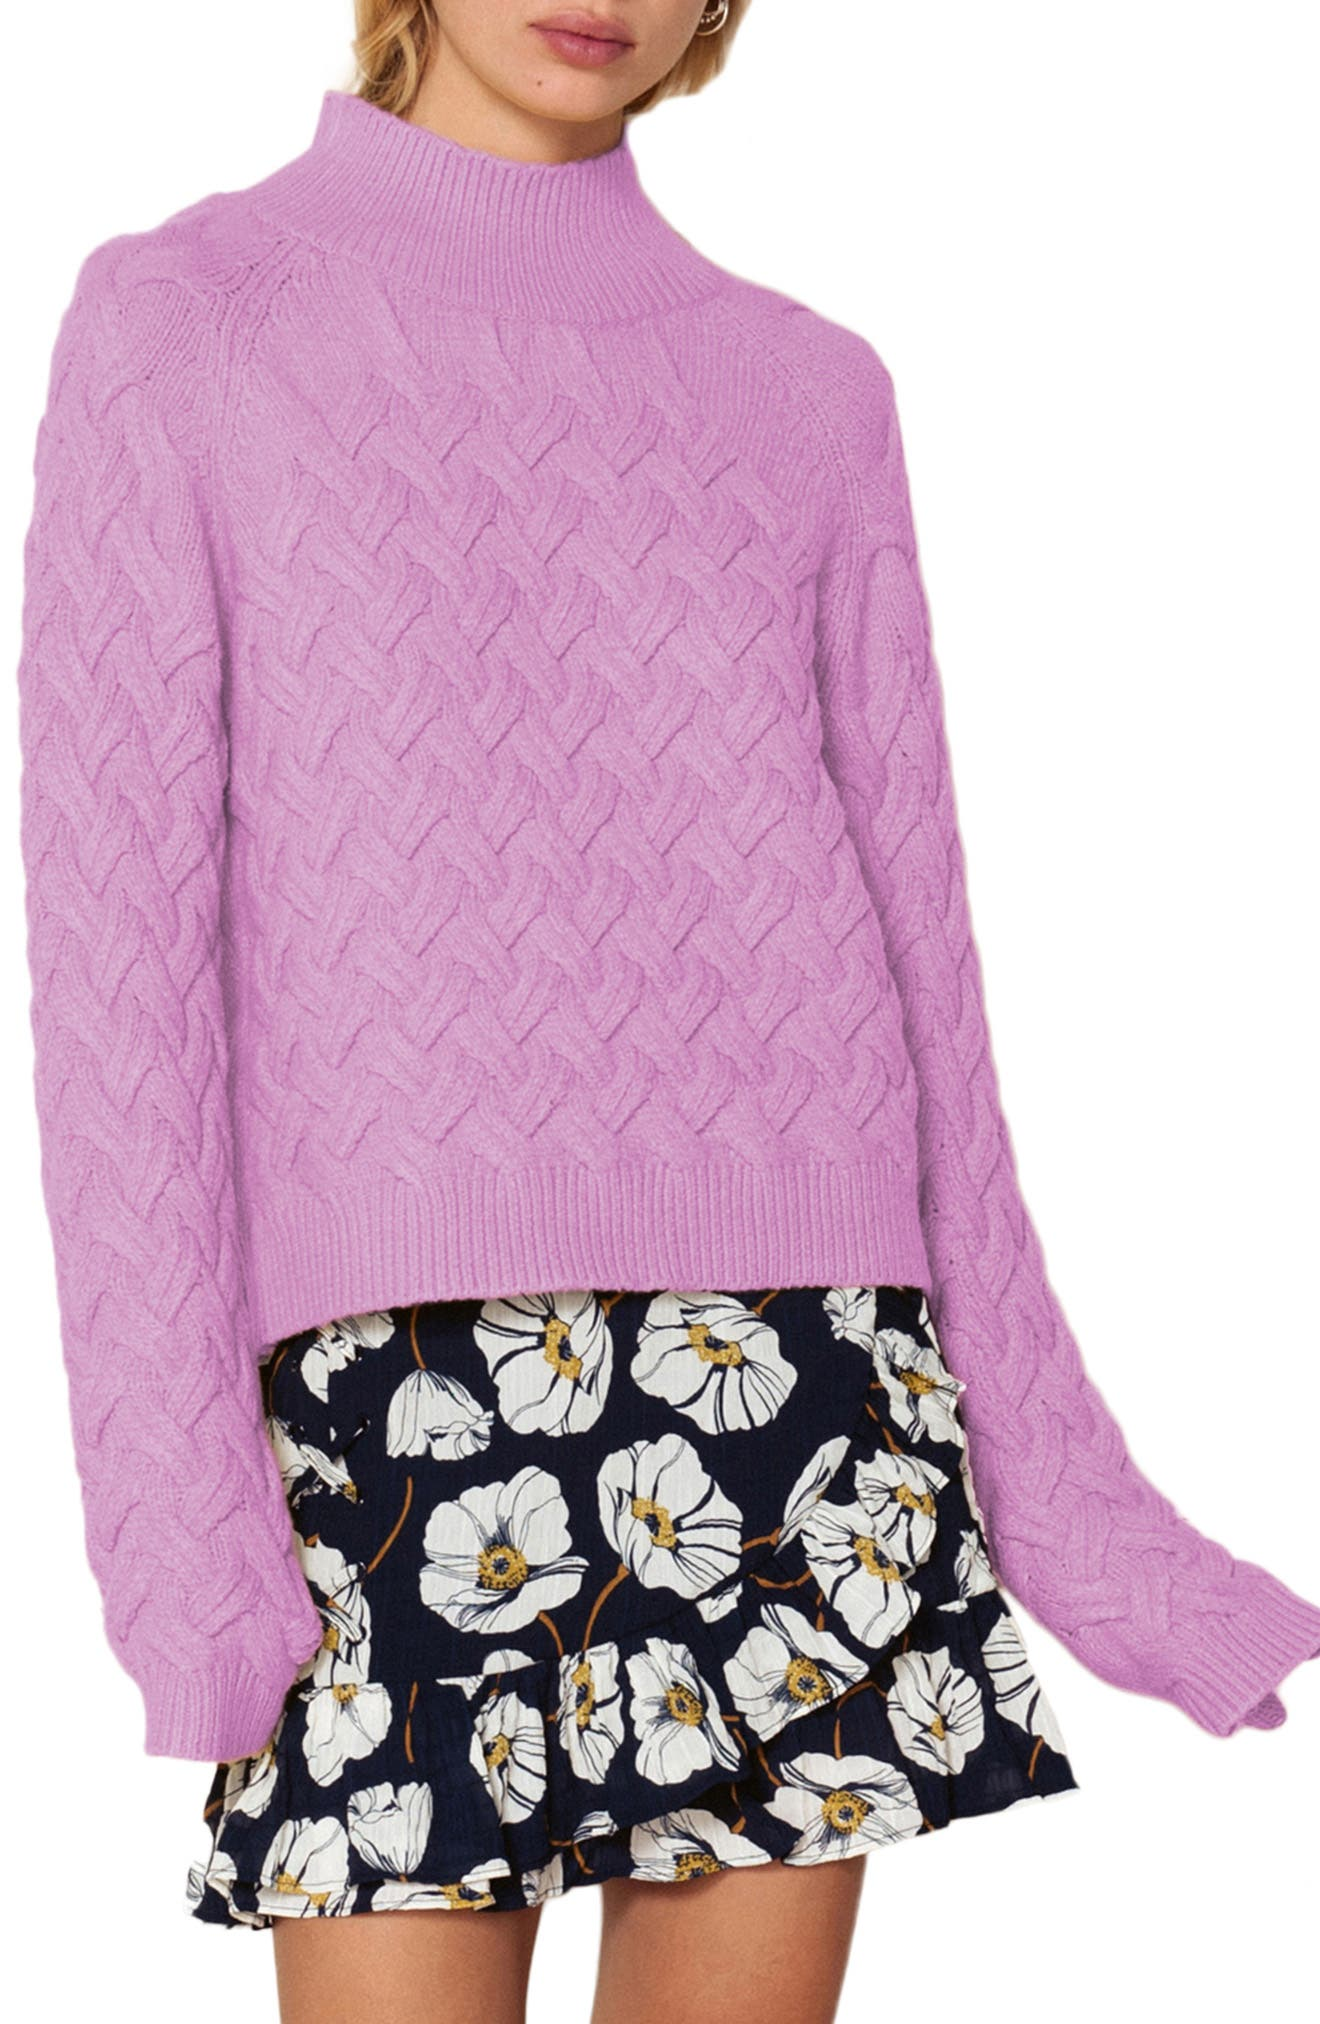 THE EAST ORDER Adele Turtleneck Sweater, Main, color, 534